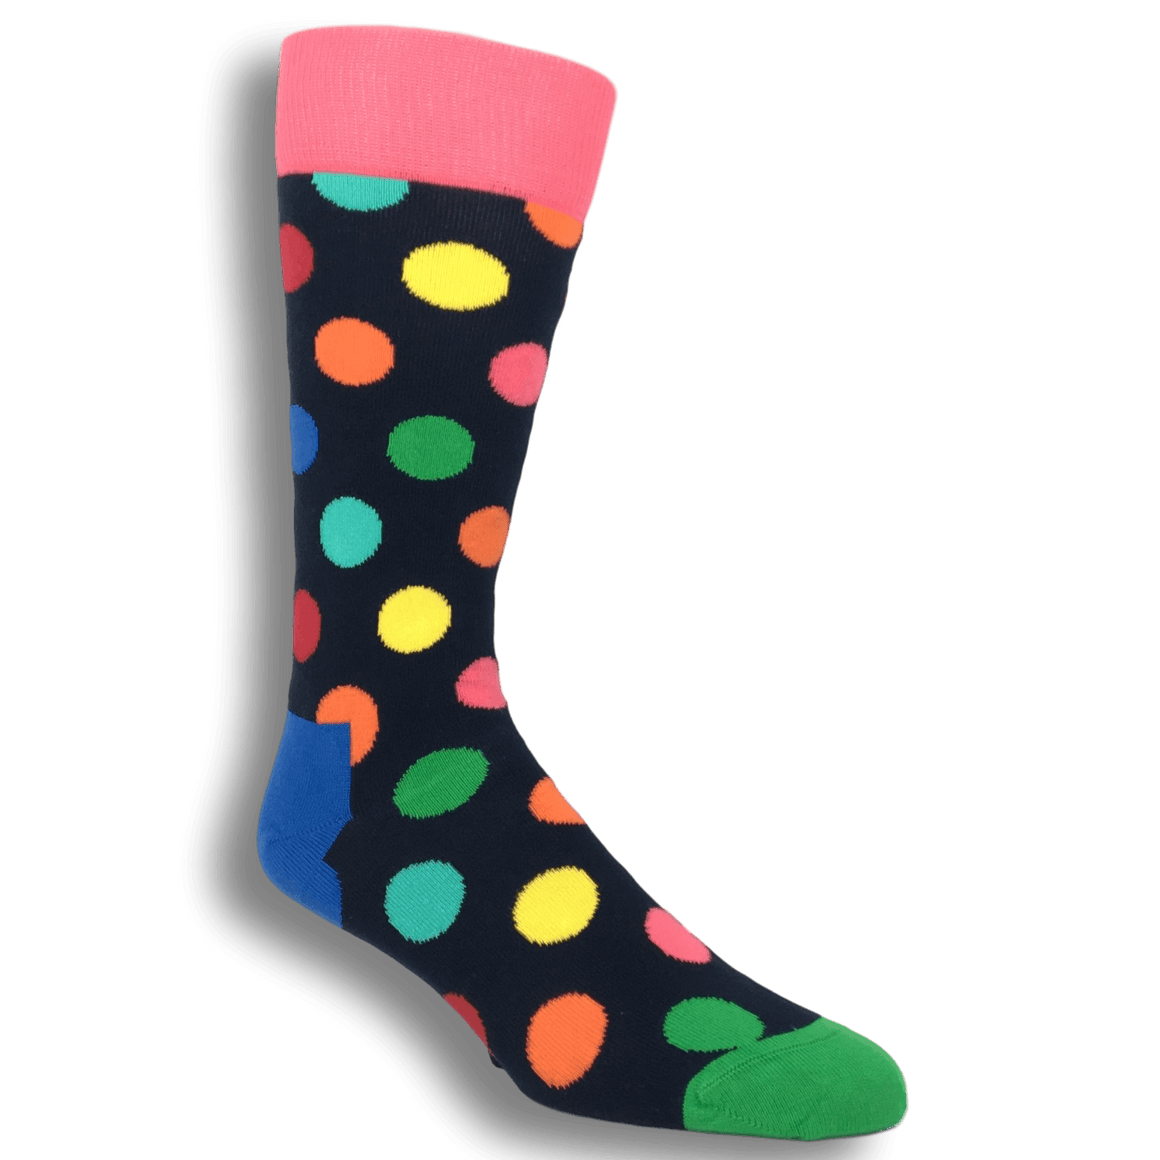 Socks - Red, Green, And Blue Multi Colored Big Dot Socks By Happy Socks